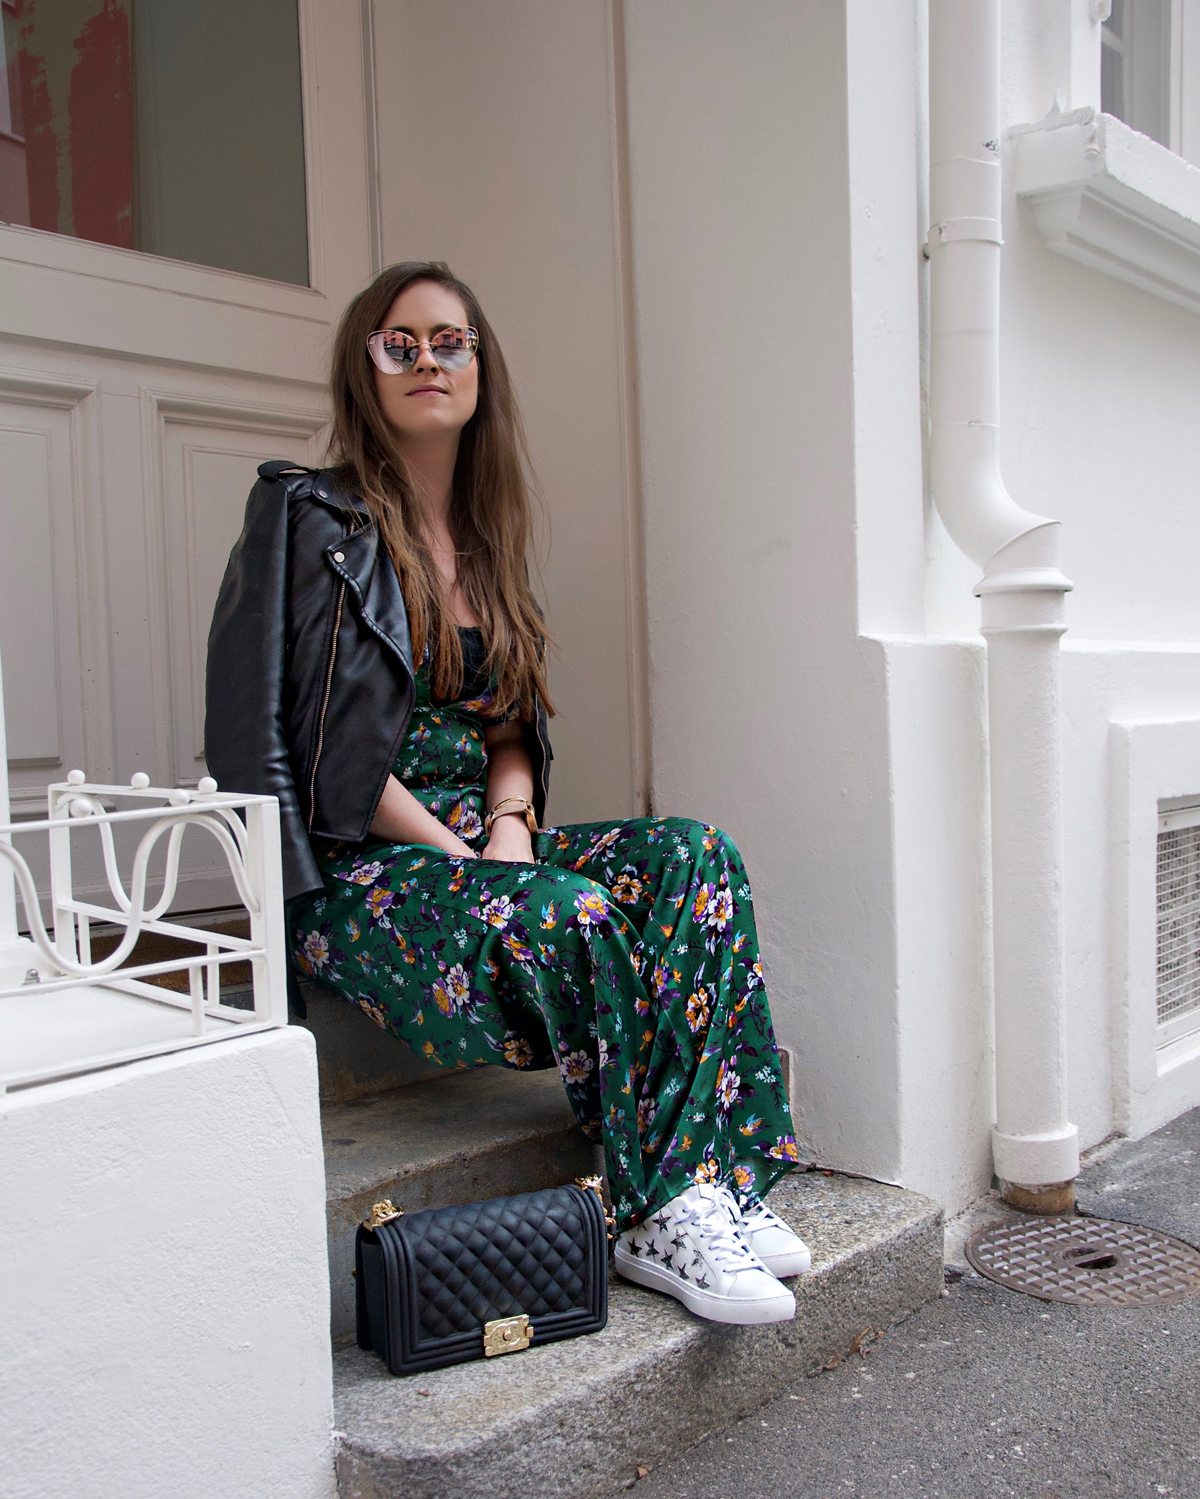 Strawberries & Champagne, a fashion Blog by Andrea Steiner based in Lucerne, Switzerland is wearing the perfect sunglasses by Silhouette Eyewear and a colorful jumpsuit.